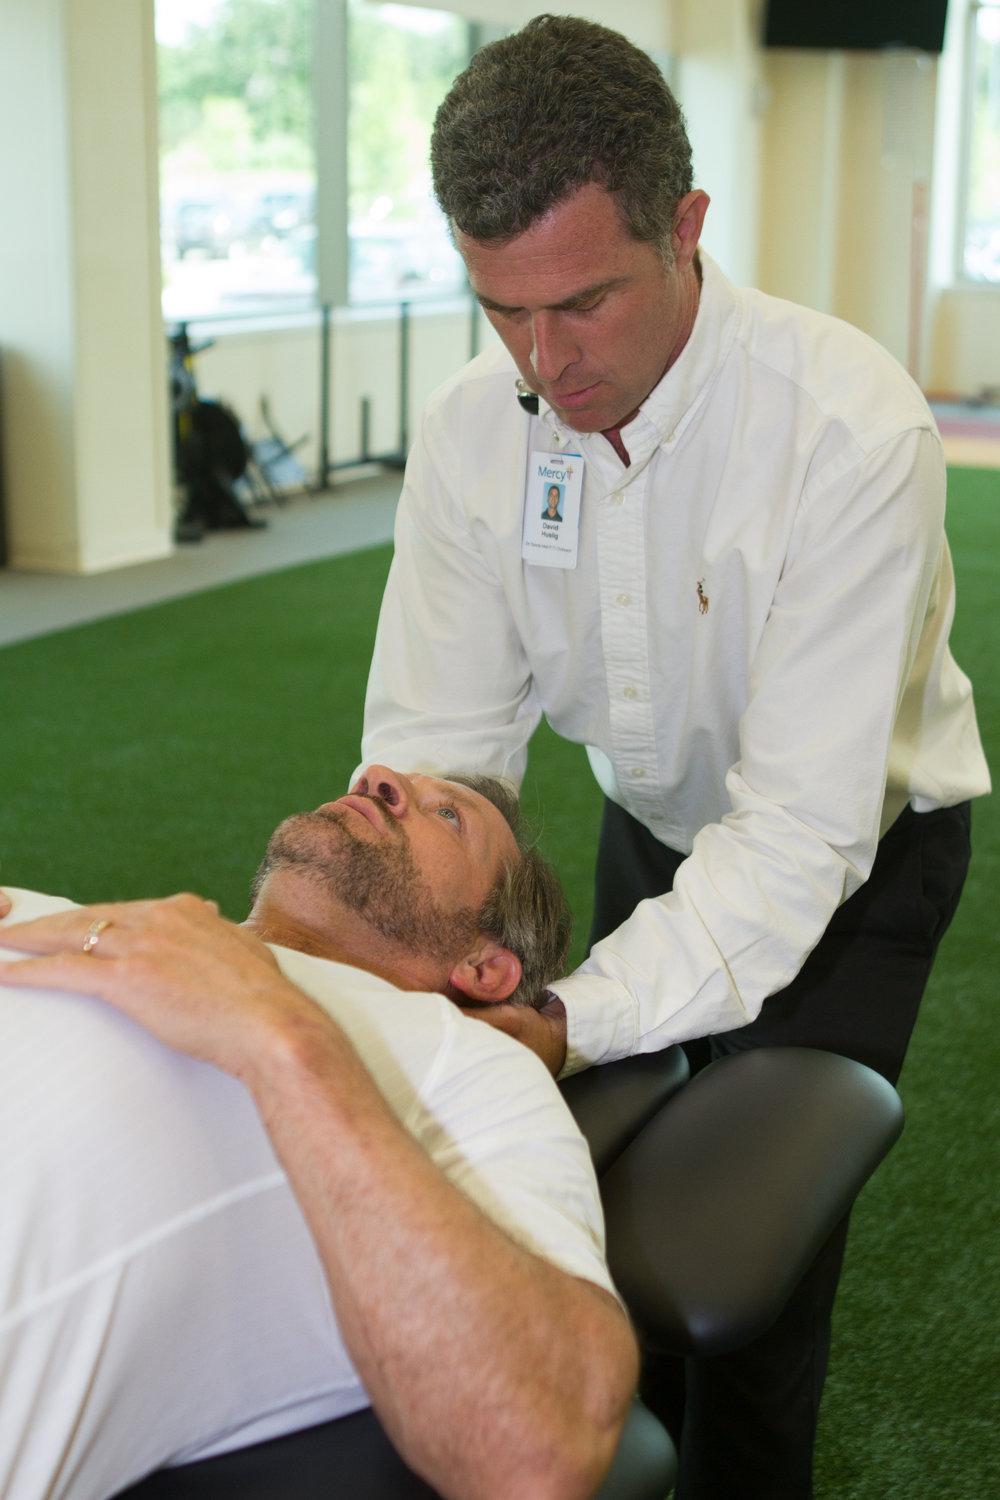 David Husling, Director of Sports Performance at  Mercy Fitness Center in Edmond, Oklahoma assists his client, Gary Brooks, with some stretches and exercises.